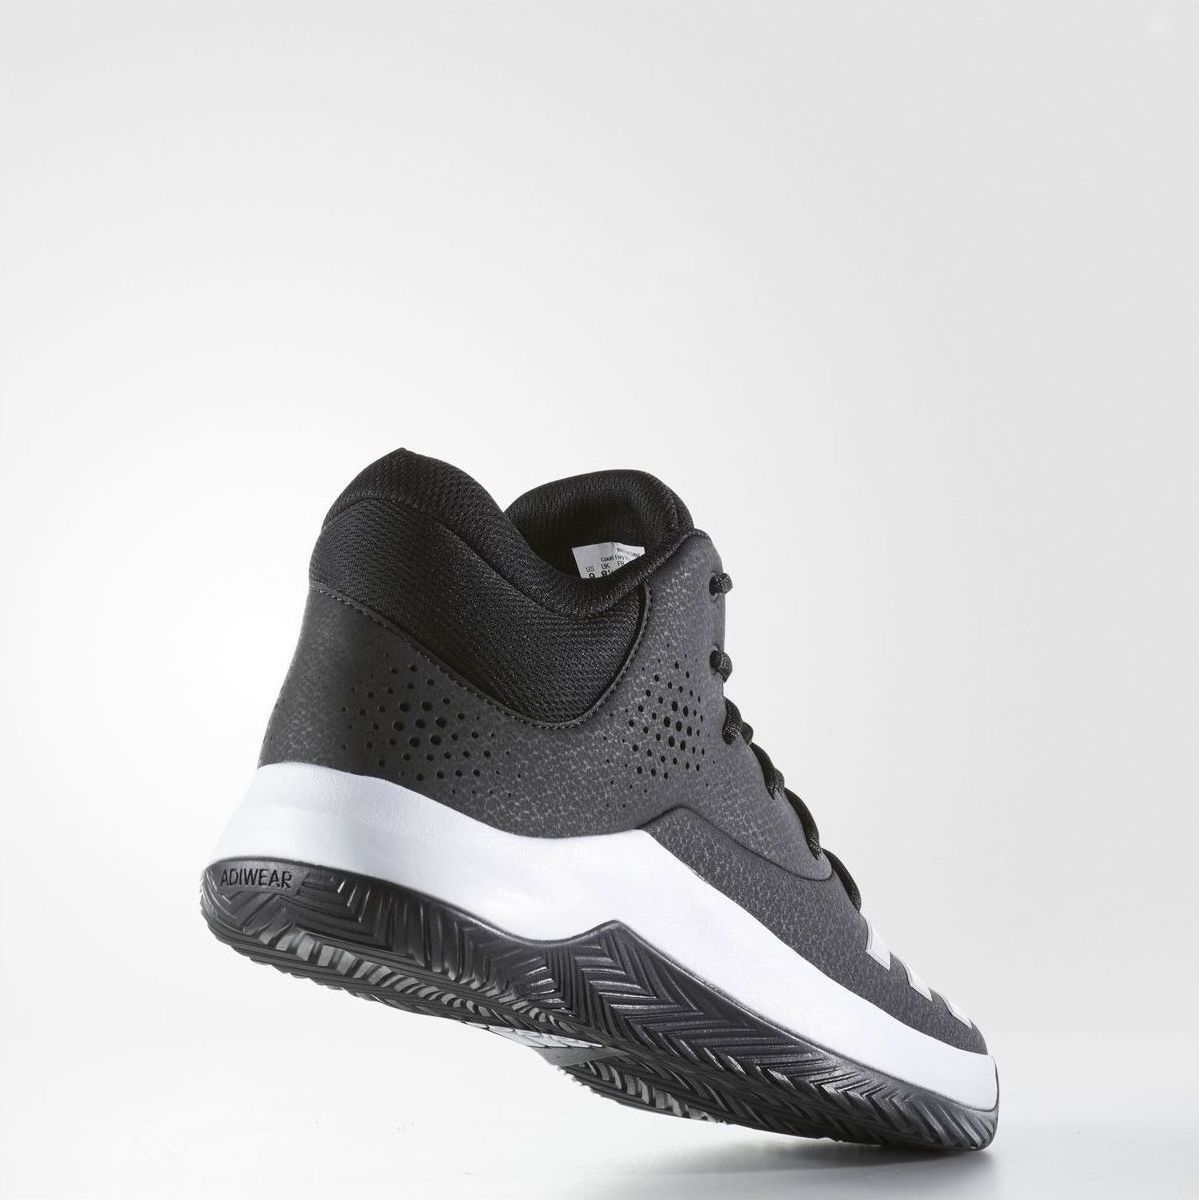 3b01ed8c0a5 Adidas Court Fury 2017 BY4188 - Skroutz.gr